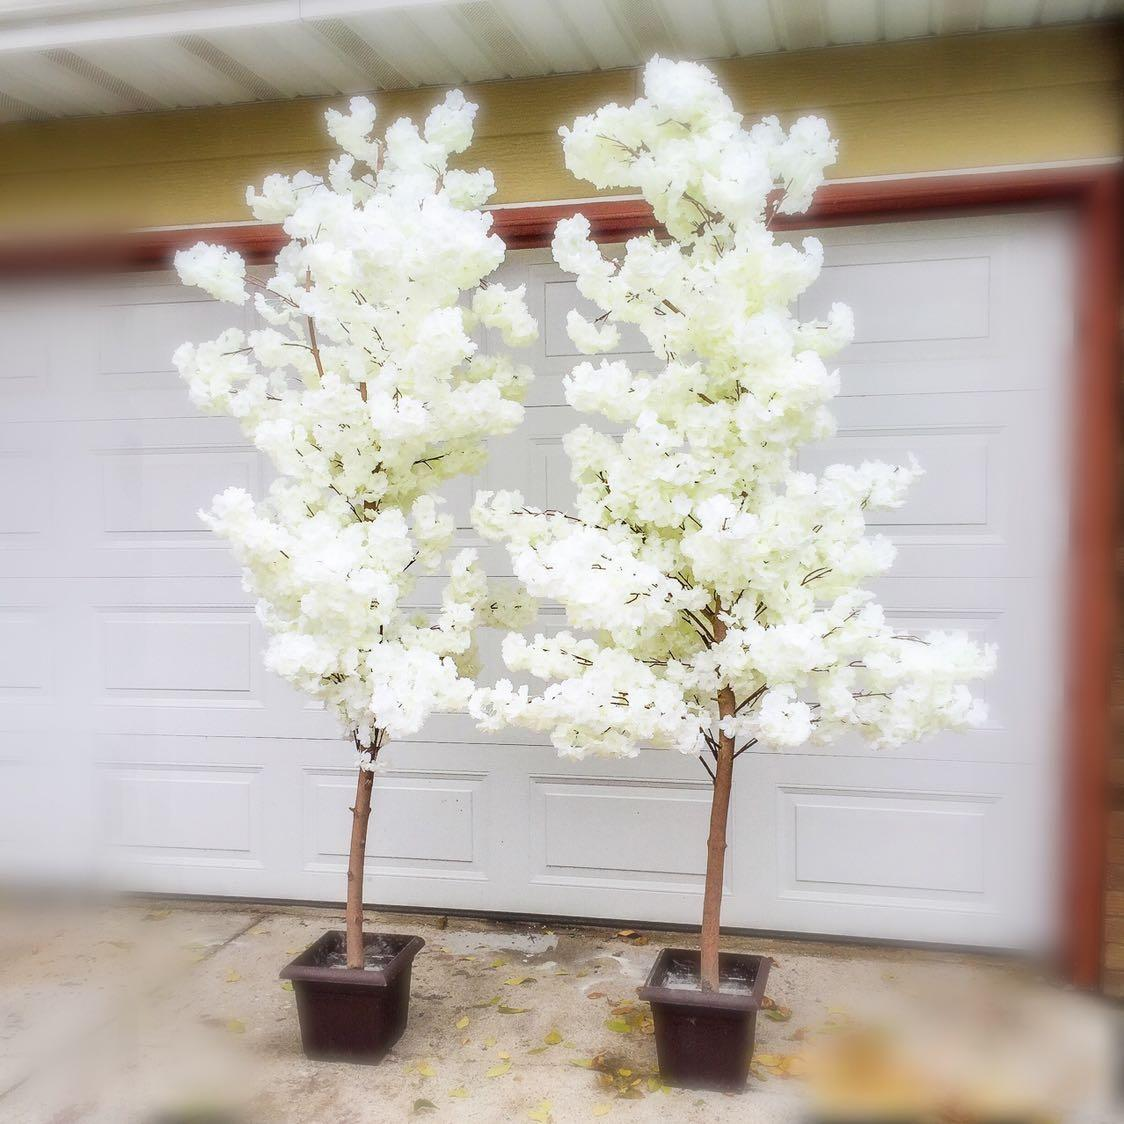 Cherry Blossom Tree Black And White: 2 White Cherry Blossom Trees (8ft Tall) For Rent In